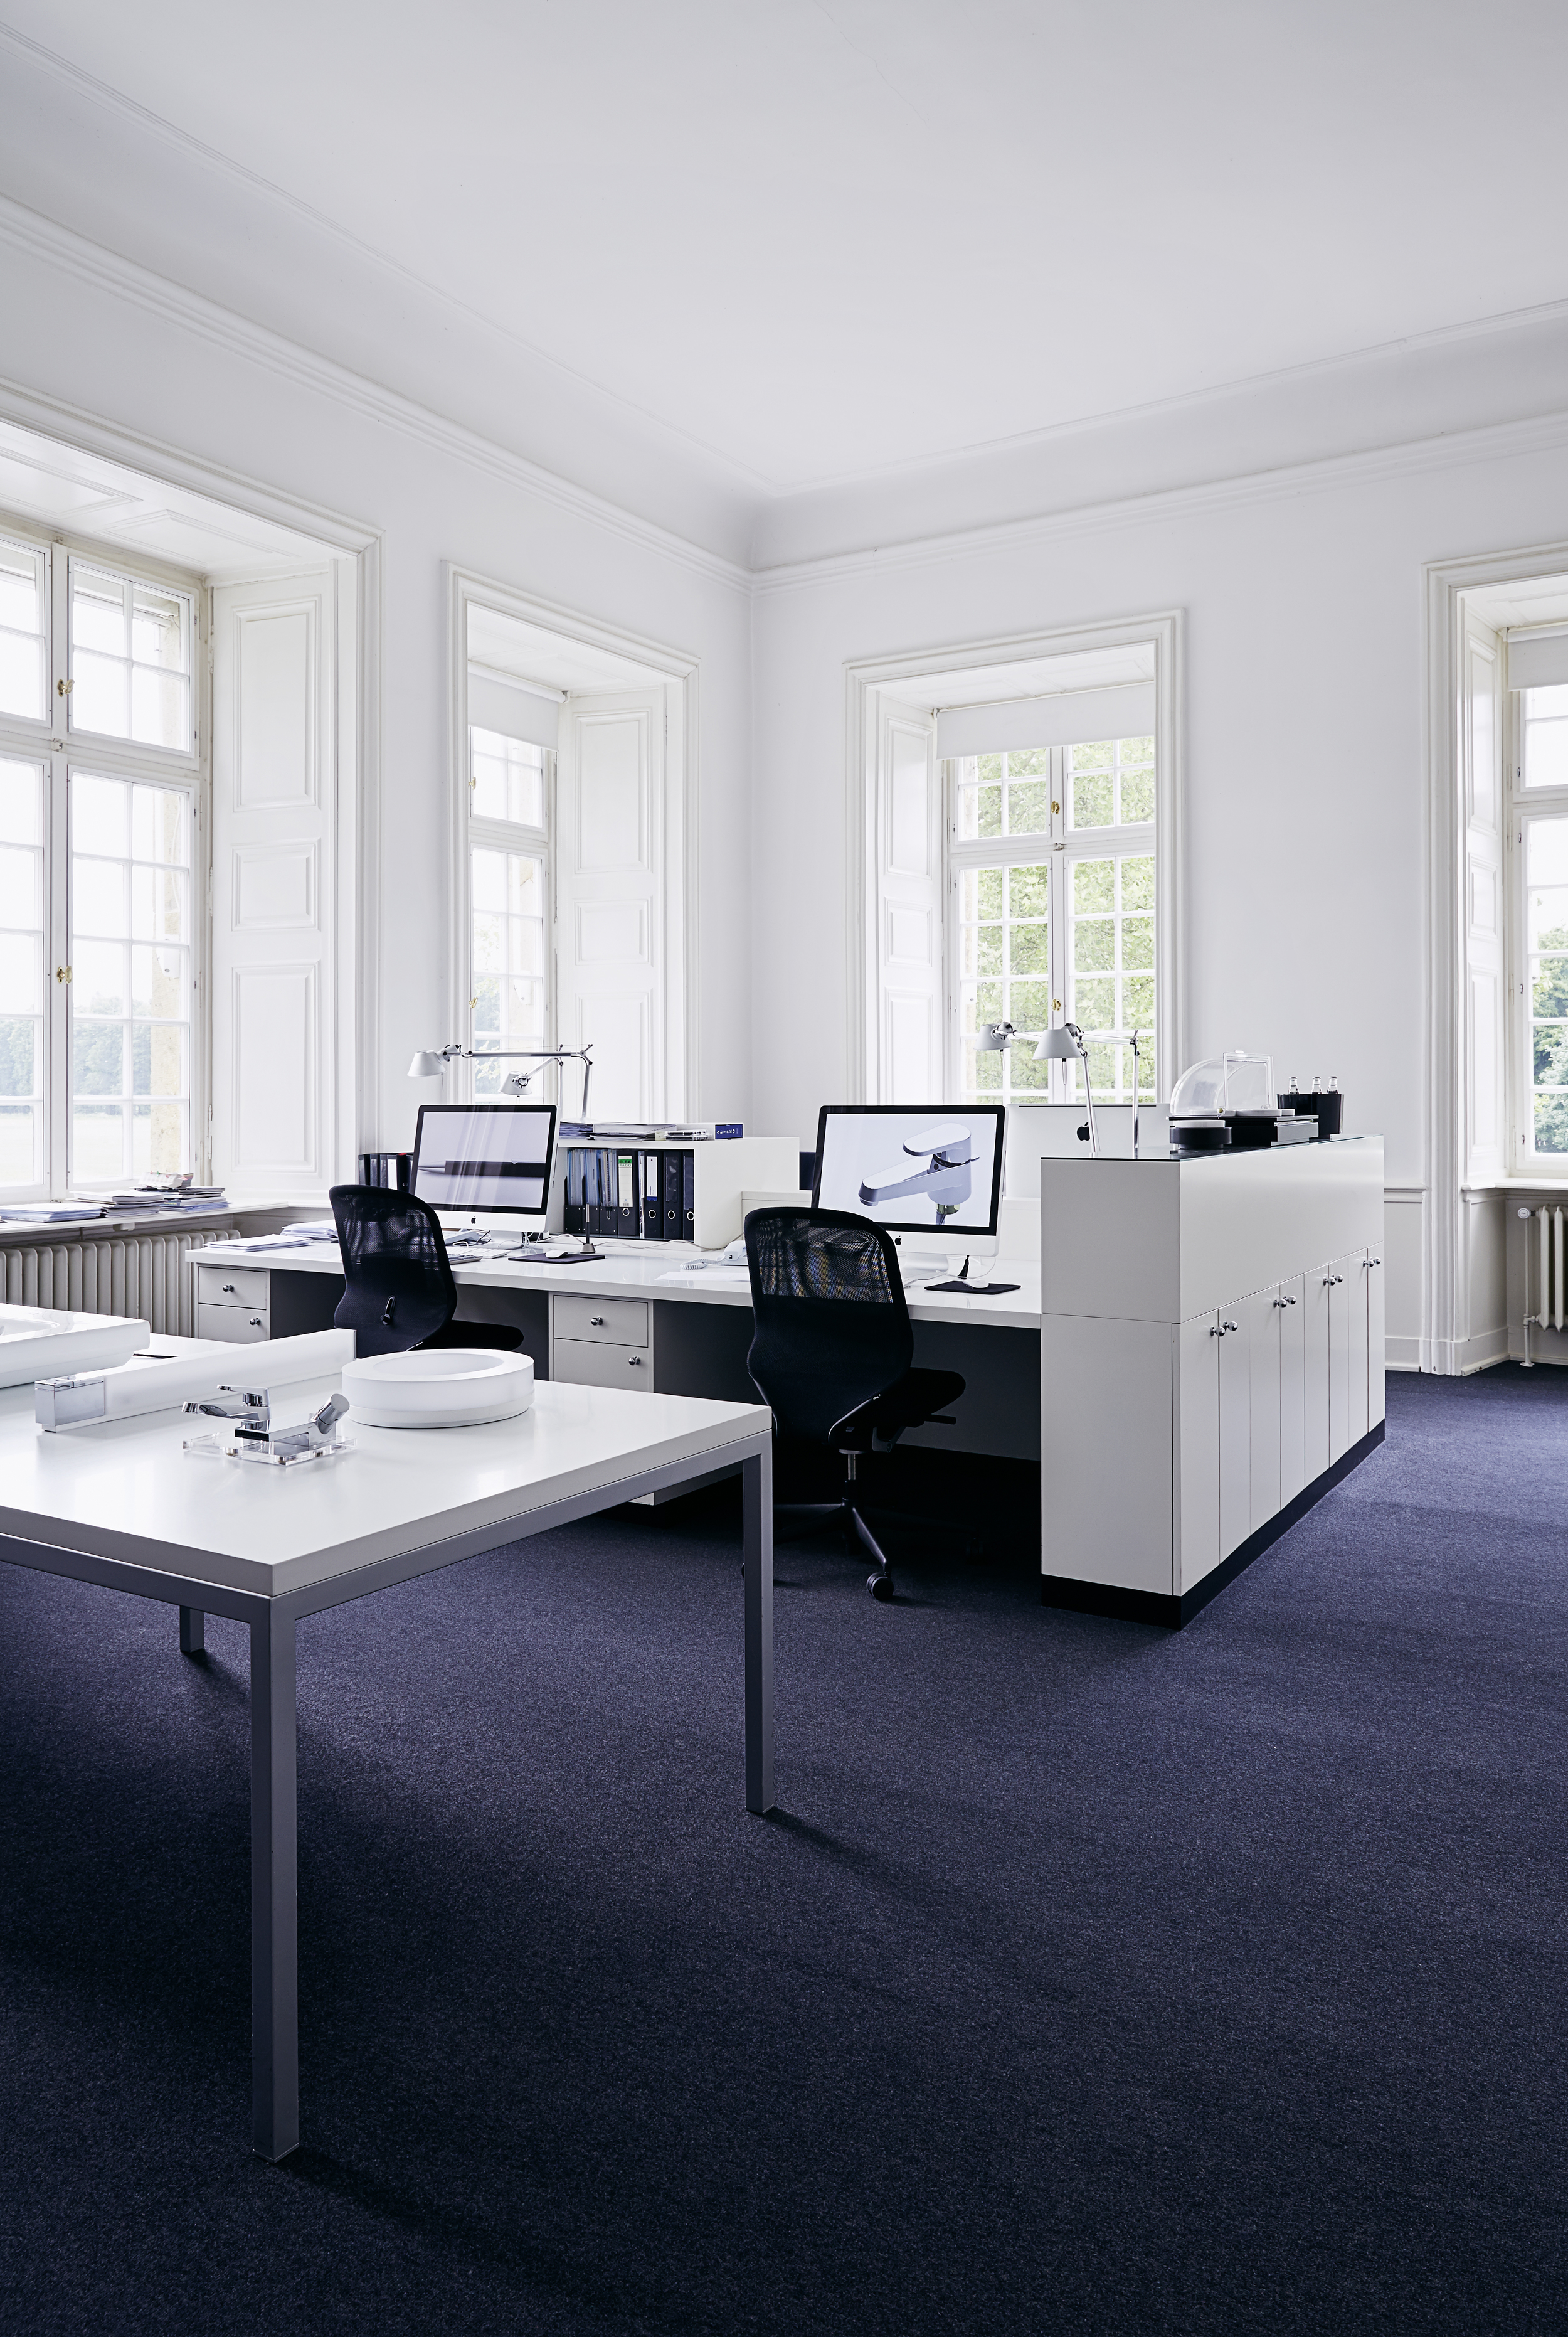 Harkotten_Design_office_01-2.jpg